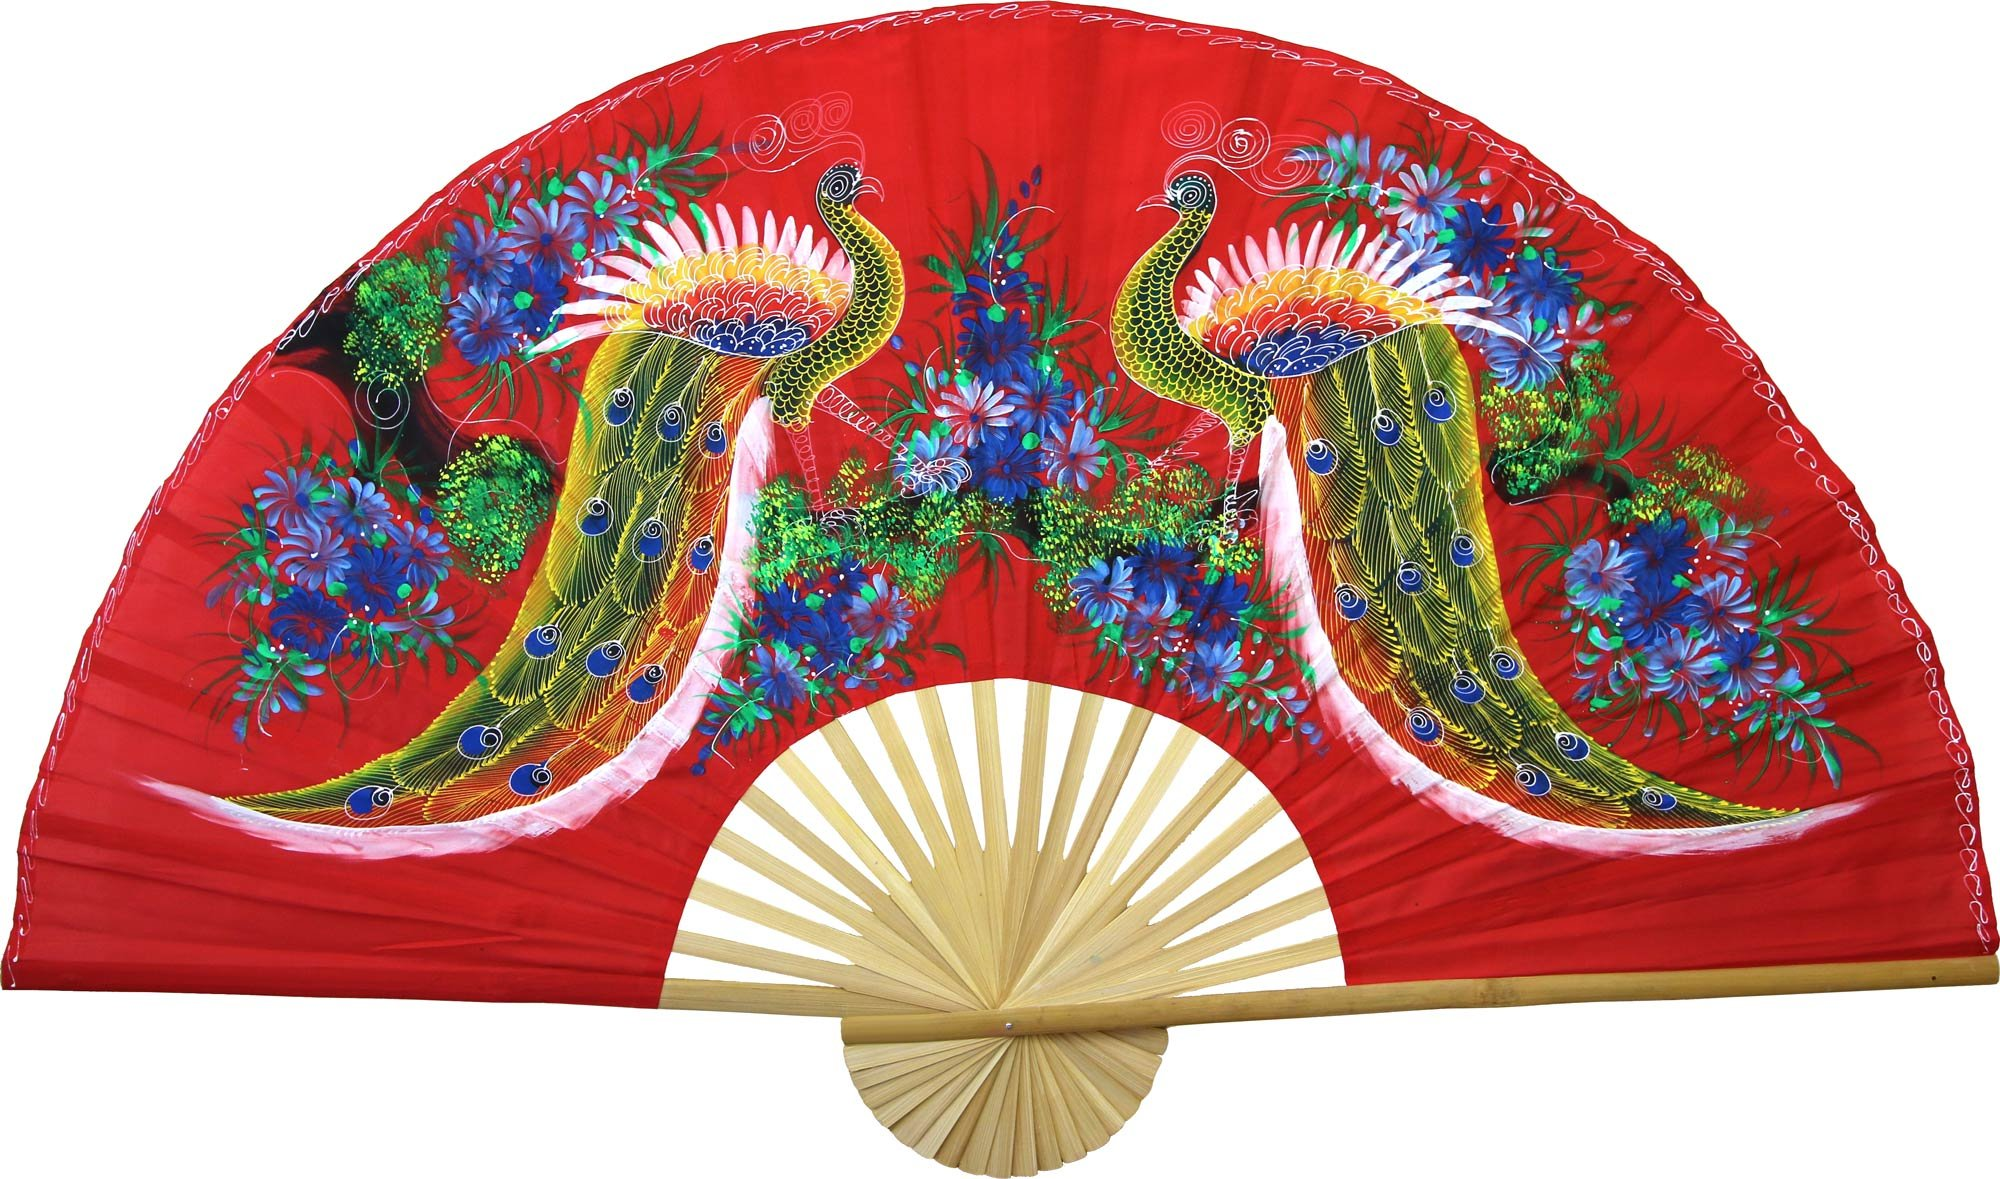 Large 60'' Folding Wall Fan -- Wisdom of the Peacocks -- Original Hand-painted Wall Art by Oriental-Decor